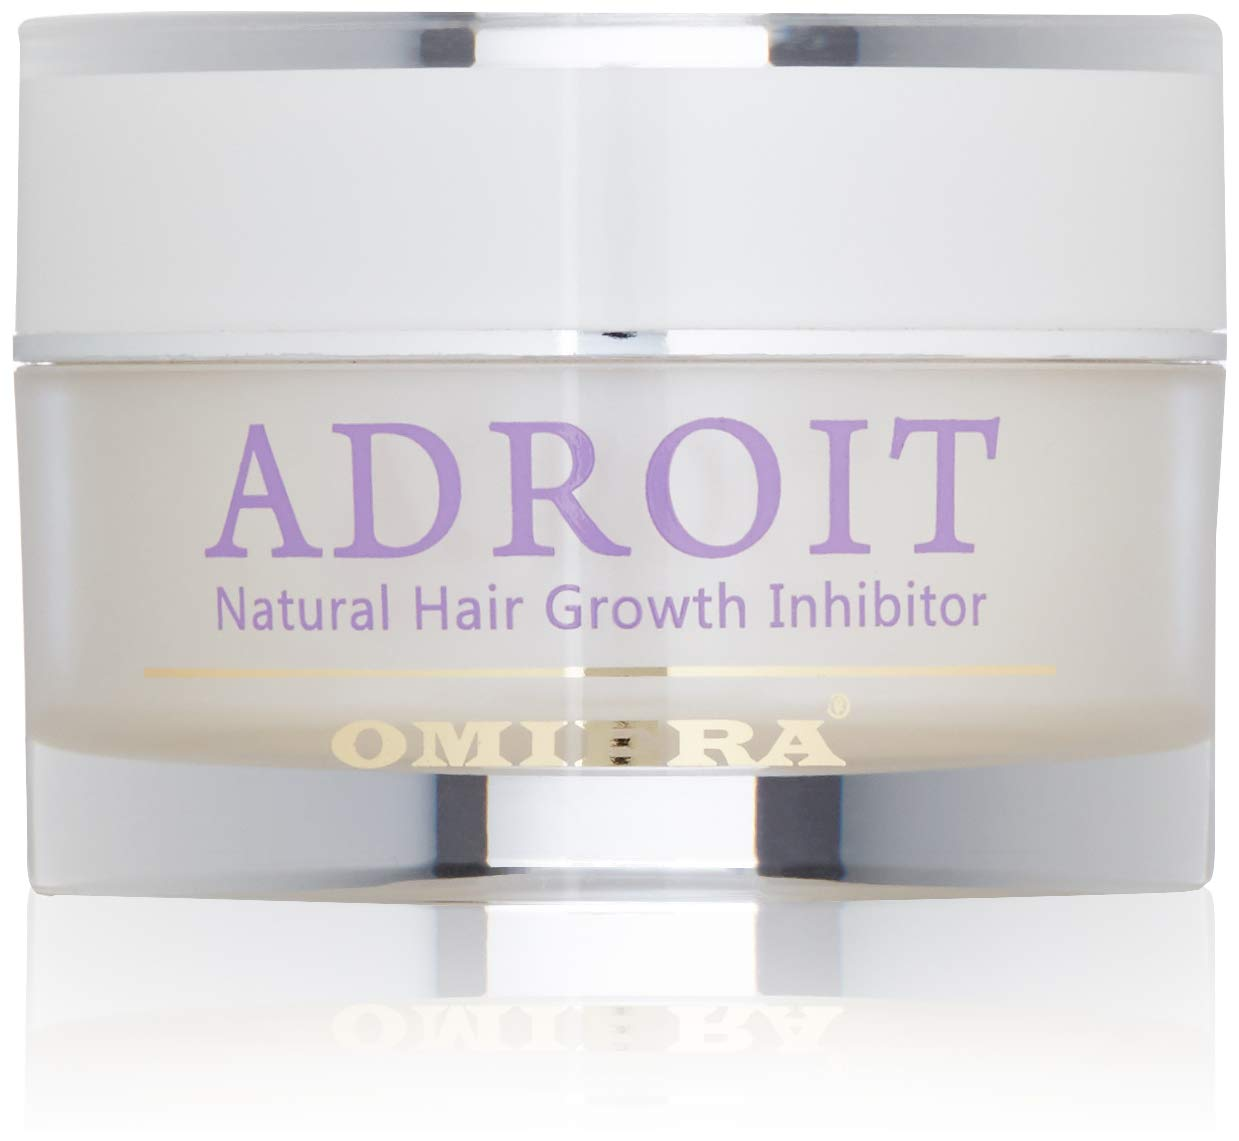 Omiera Adroit Natural Facial, Body, Bikini, And Legs Hair Growth Inhibitor Cream, Minimizes Growth of Unwanted Hair While Preventing Breakouts, After Epilation, Laser or Wax Cream, 1 Ounce Omiera Labs 4X-Q35Y-PZSK